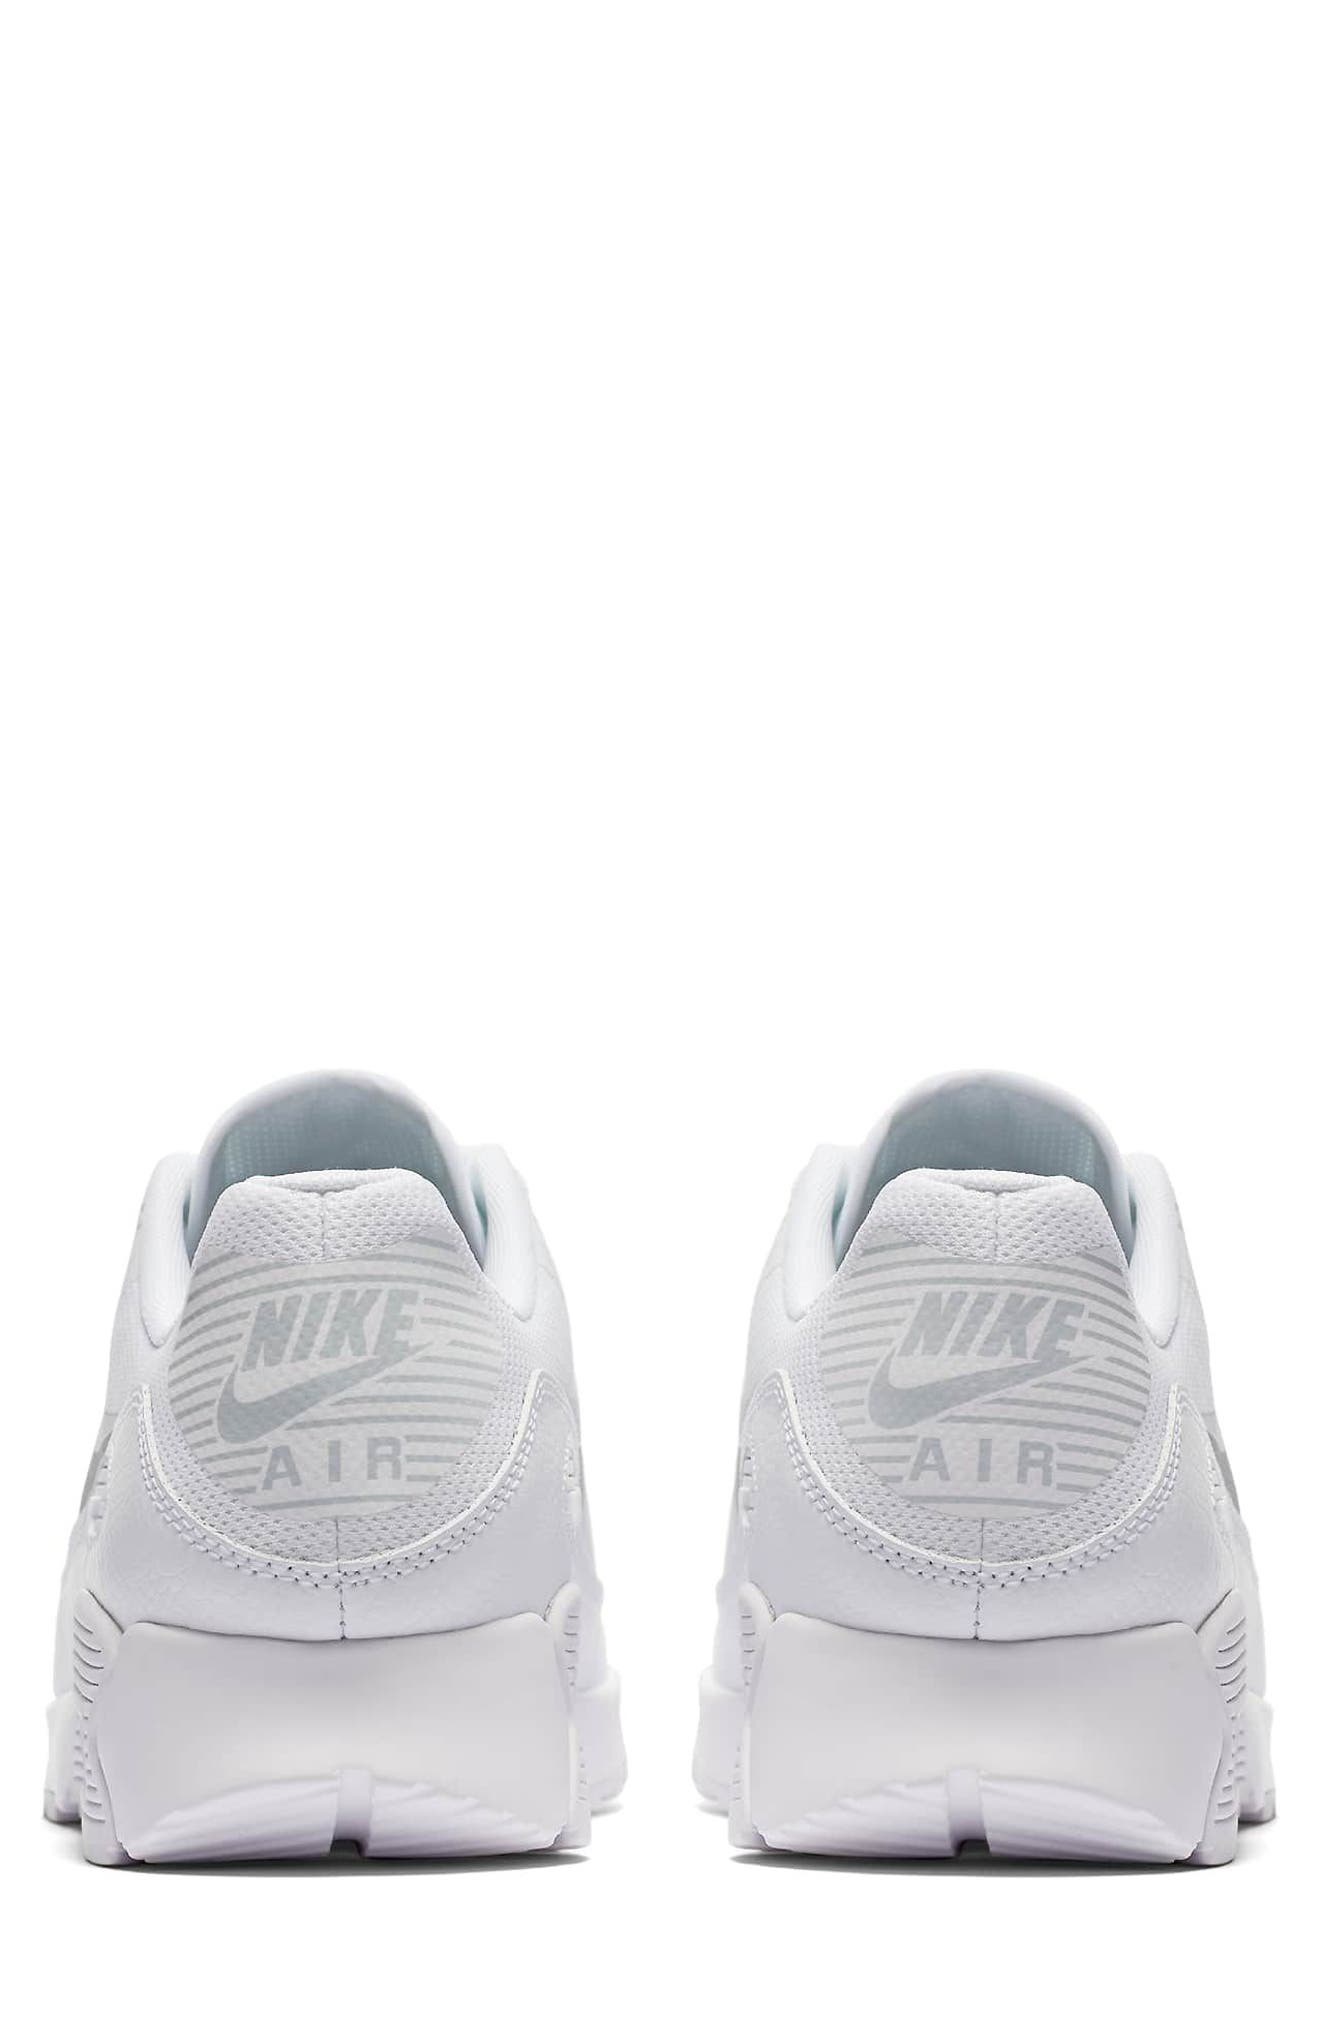 Alternate Image 3  - Nike Air Max 90 Ultra 2.0 Sneaker (Women)